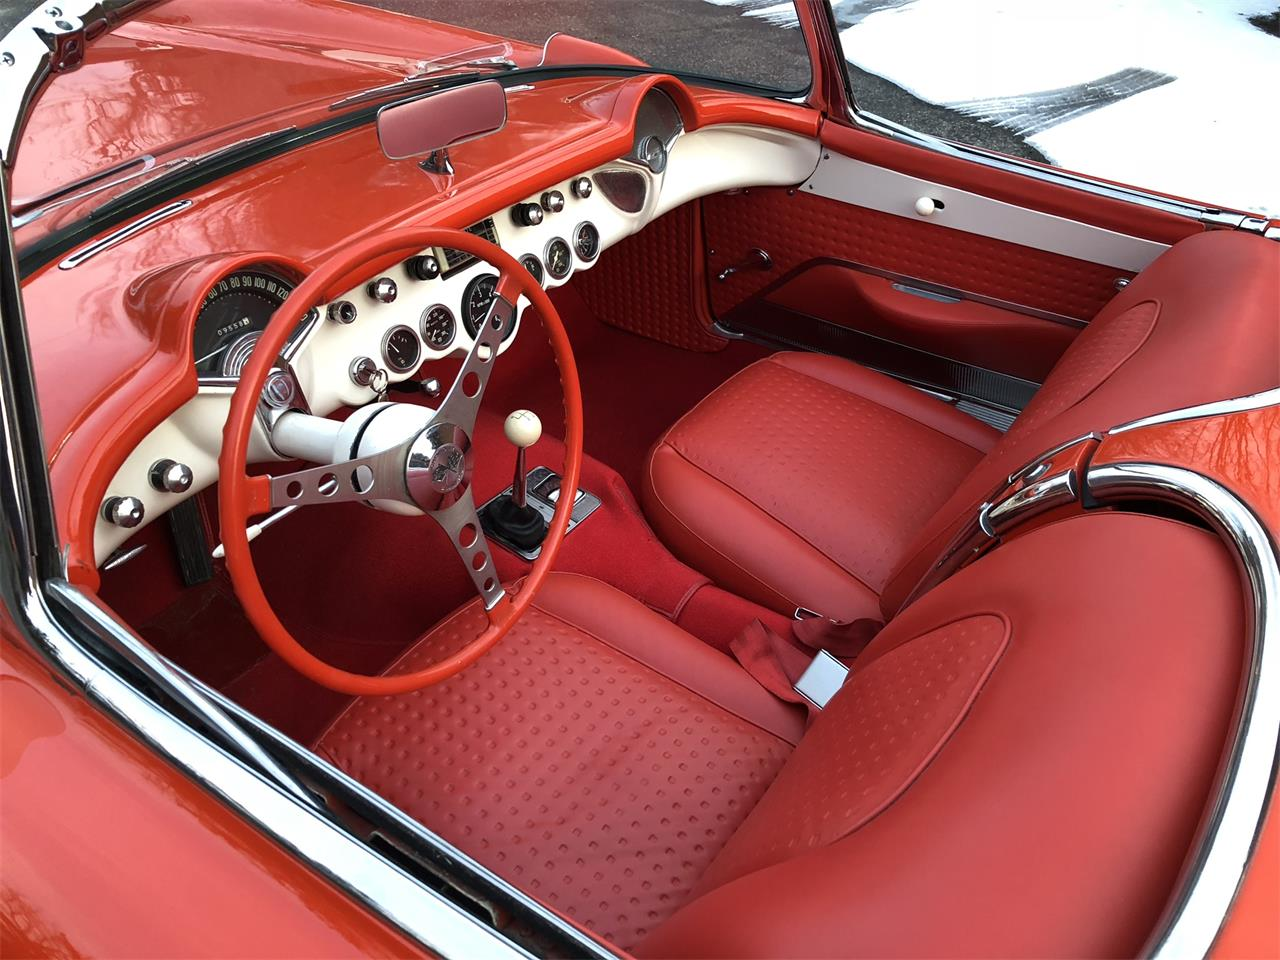 Large Picture of Classic '57 Chevrolet Corvette located in Indiana Offered by Earlywine Auctions - MYHK